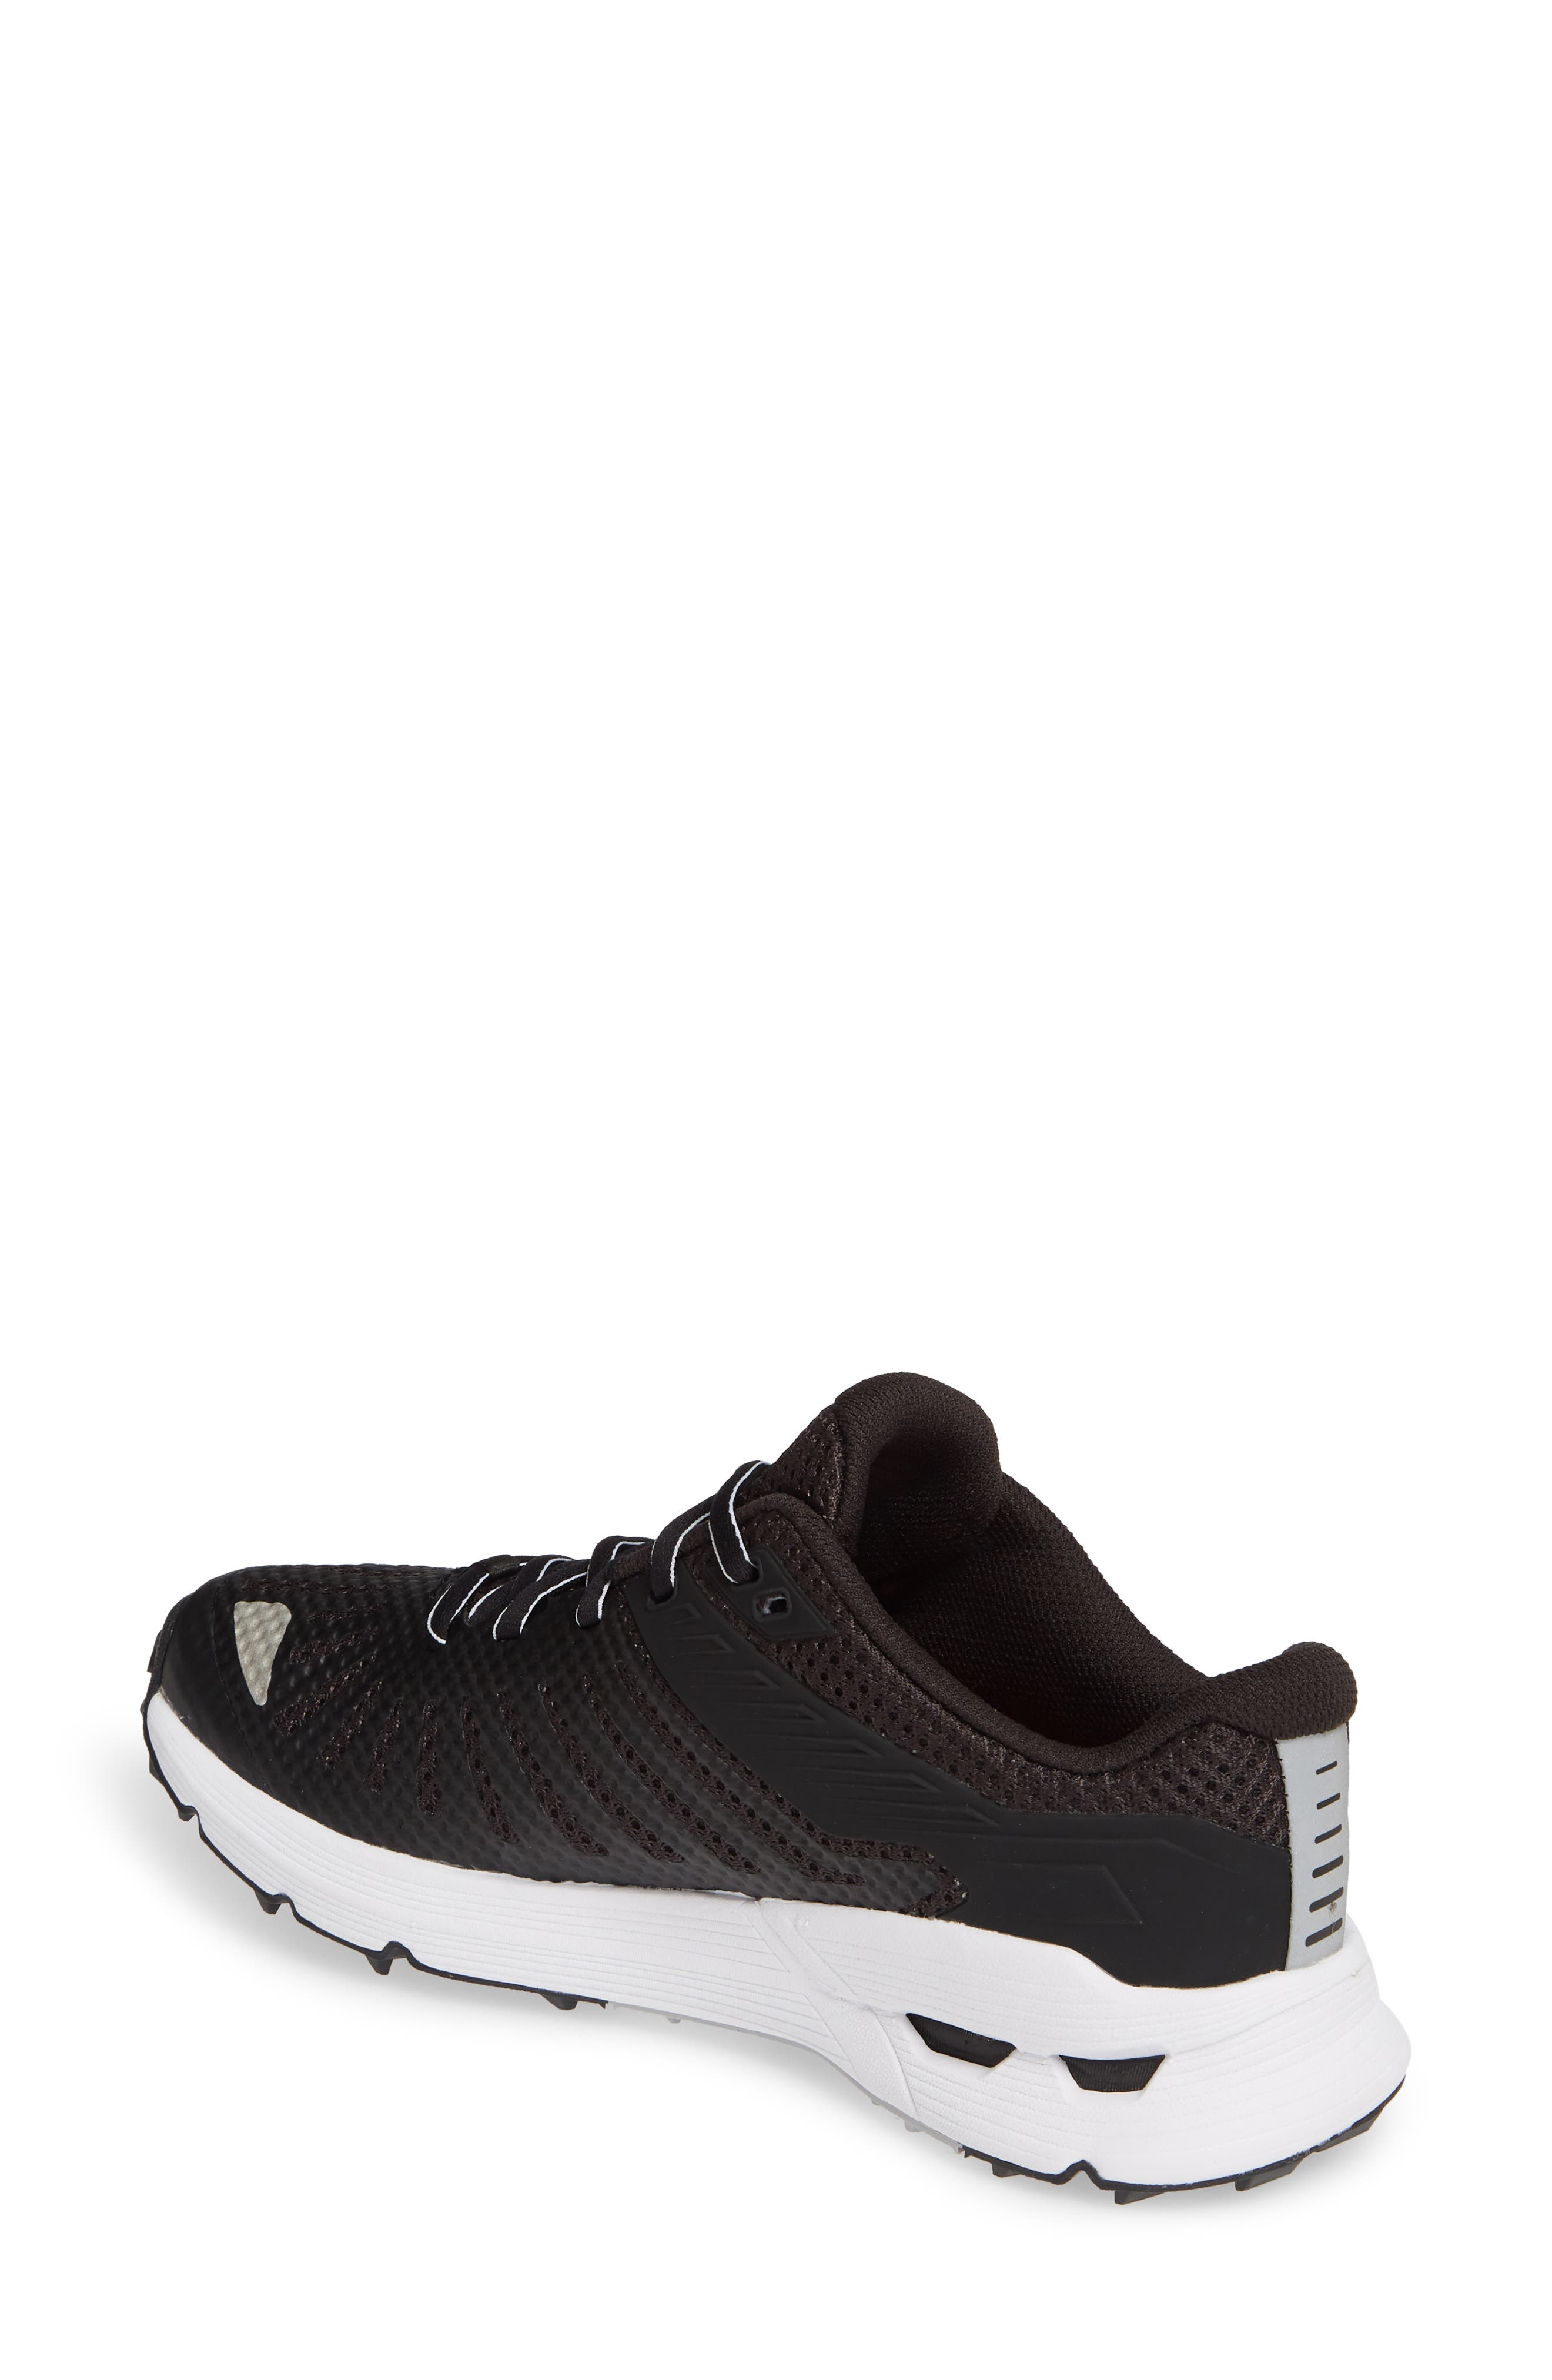 THE NORTH FACE, Ampezzo Running Shoe, Alternate thumbnail 2, color, BLACK/ WHITE